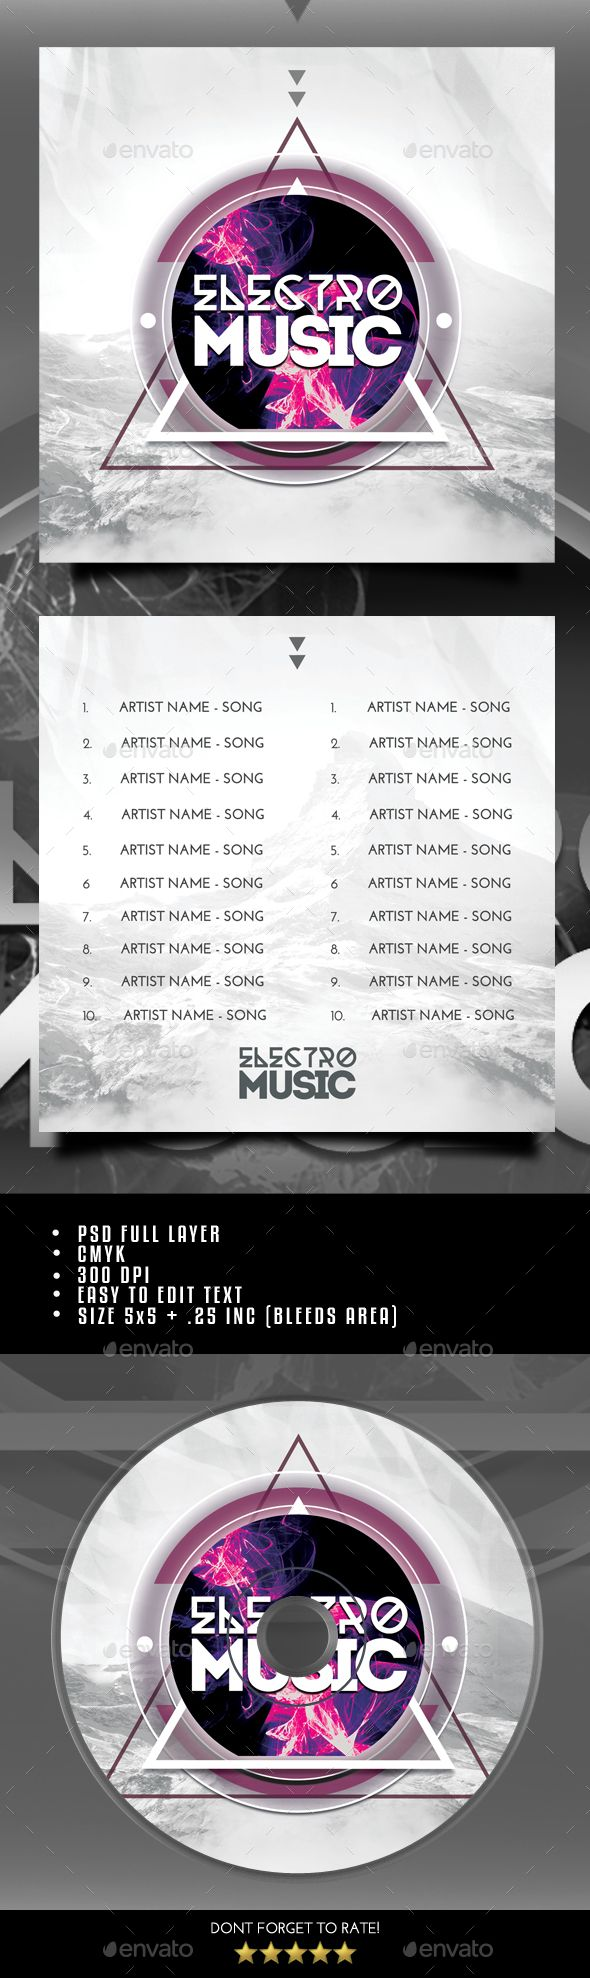 Electro Music CD Cover Template PSD